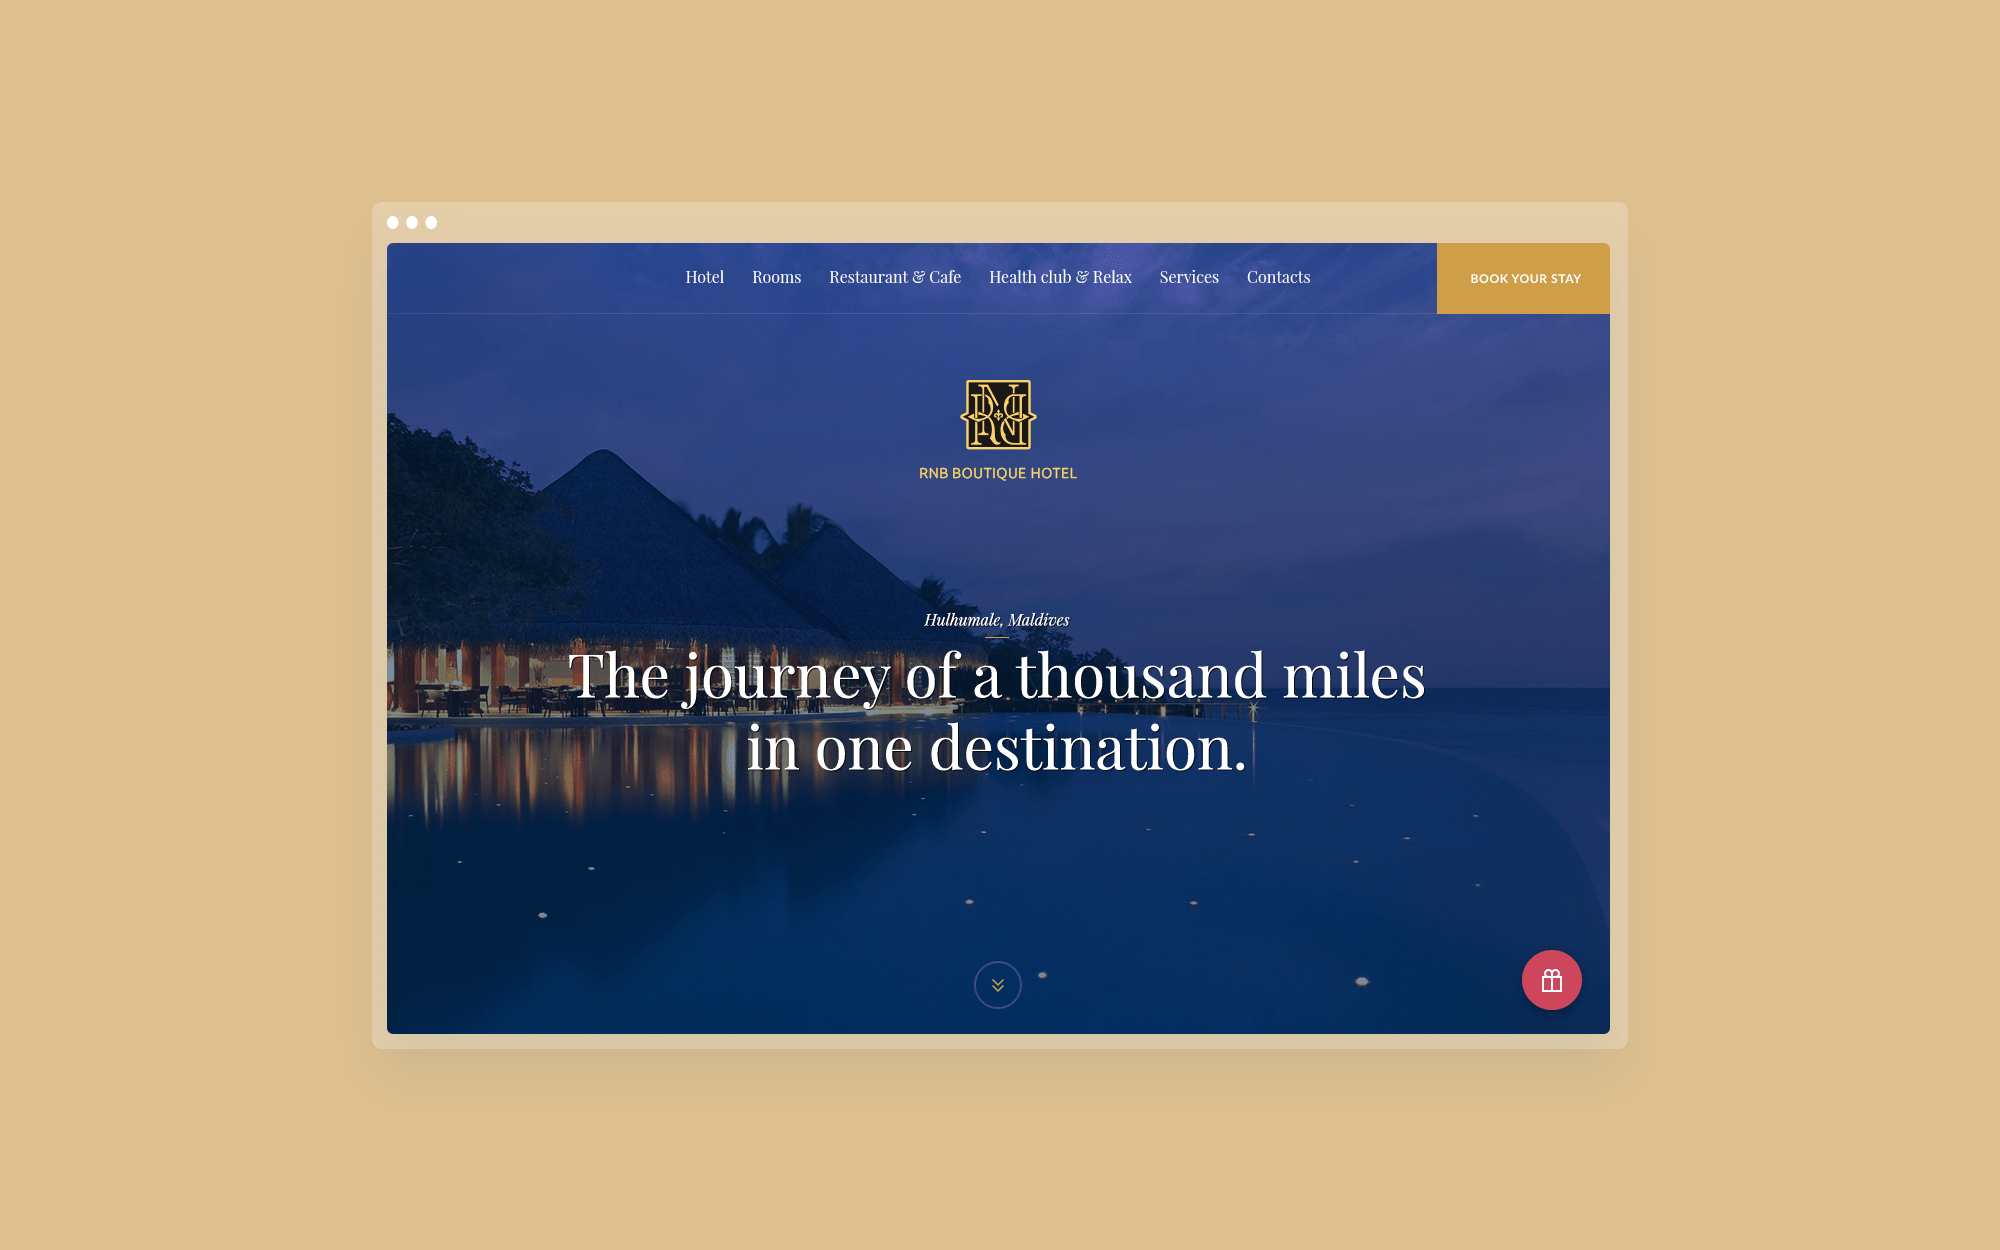 Hotel web-site design